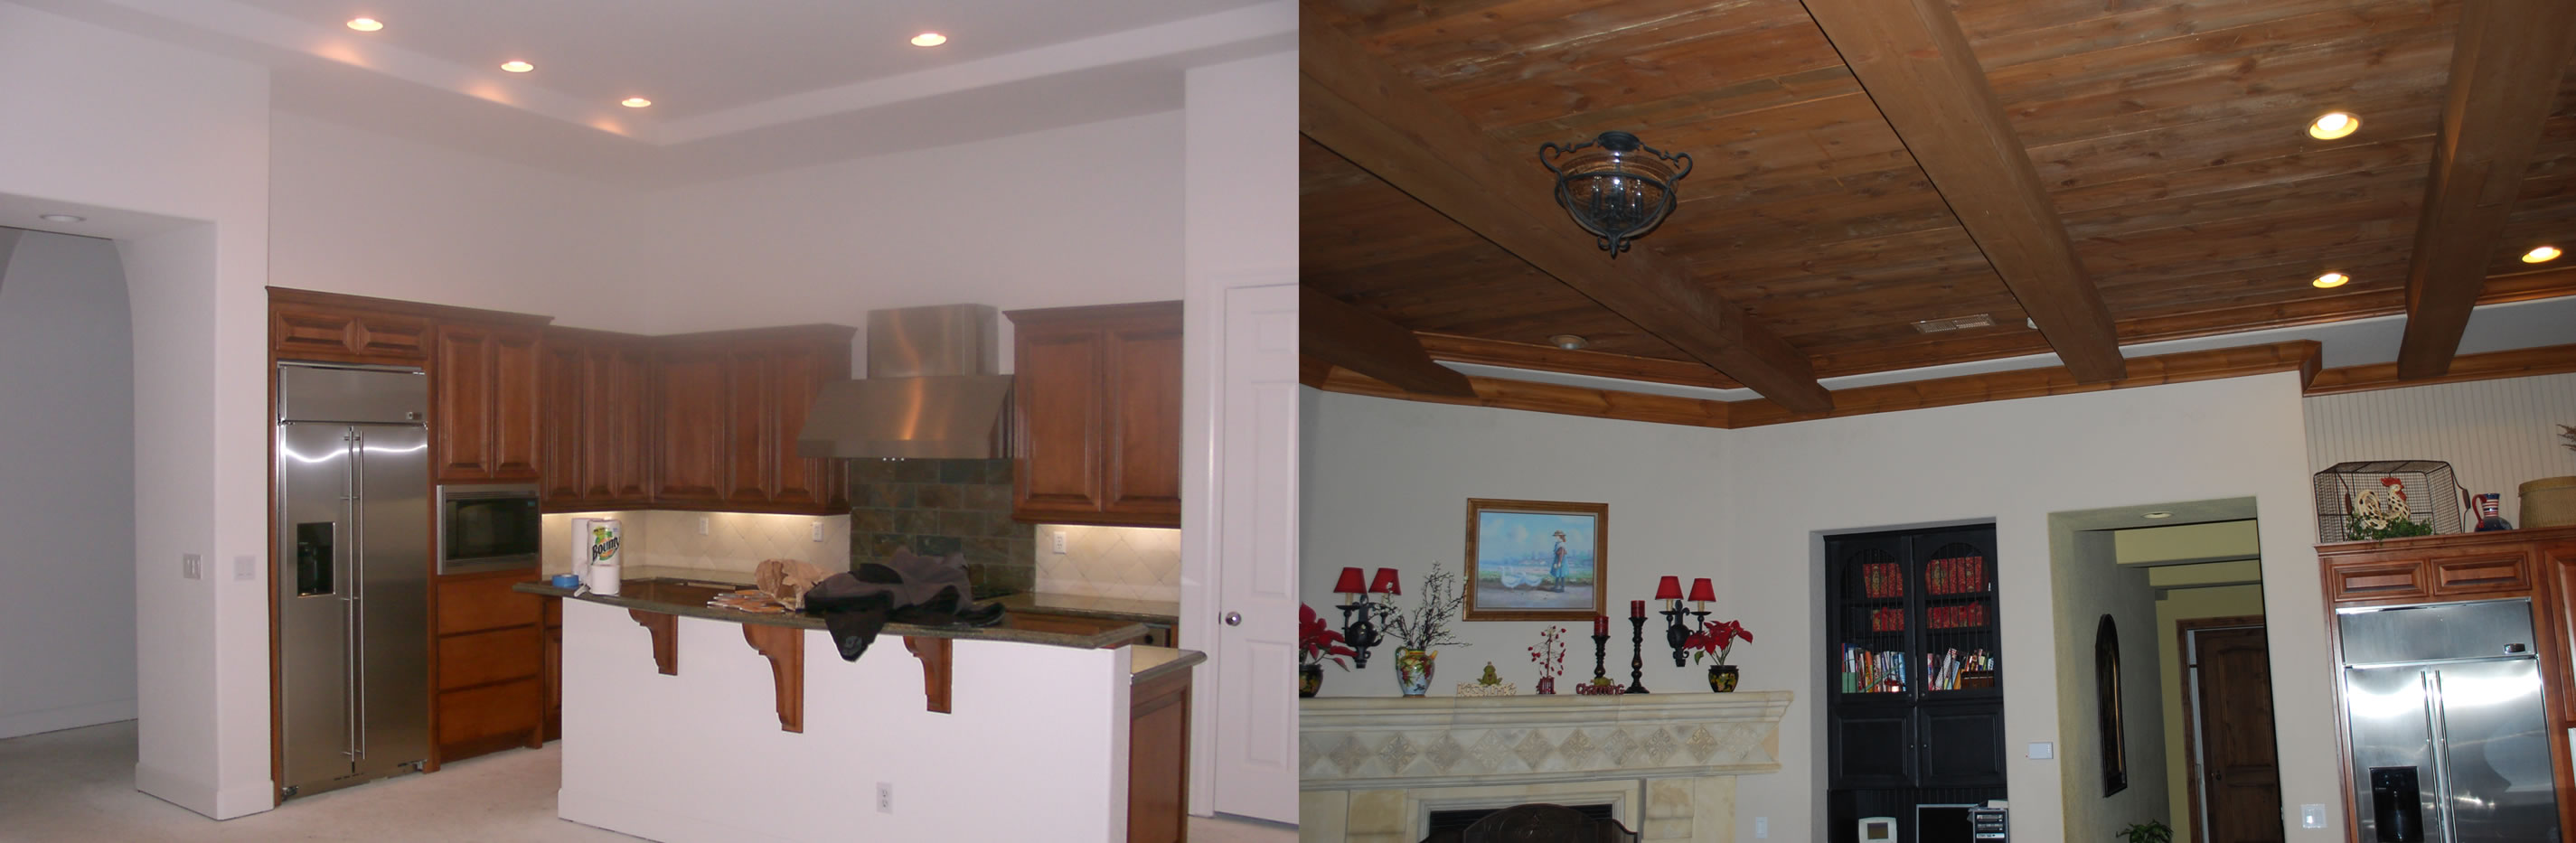 Custom Cabinets Construction Remodeling Remodel Bath Kitchen Cabinets,  Custom Cabinets, Custom Furniture, Fireplace